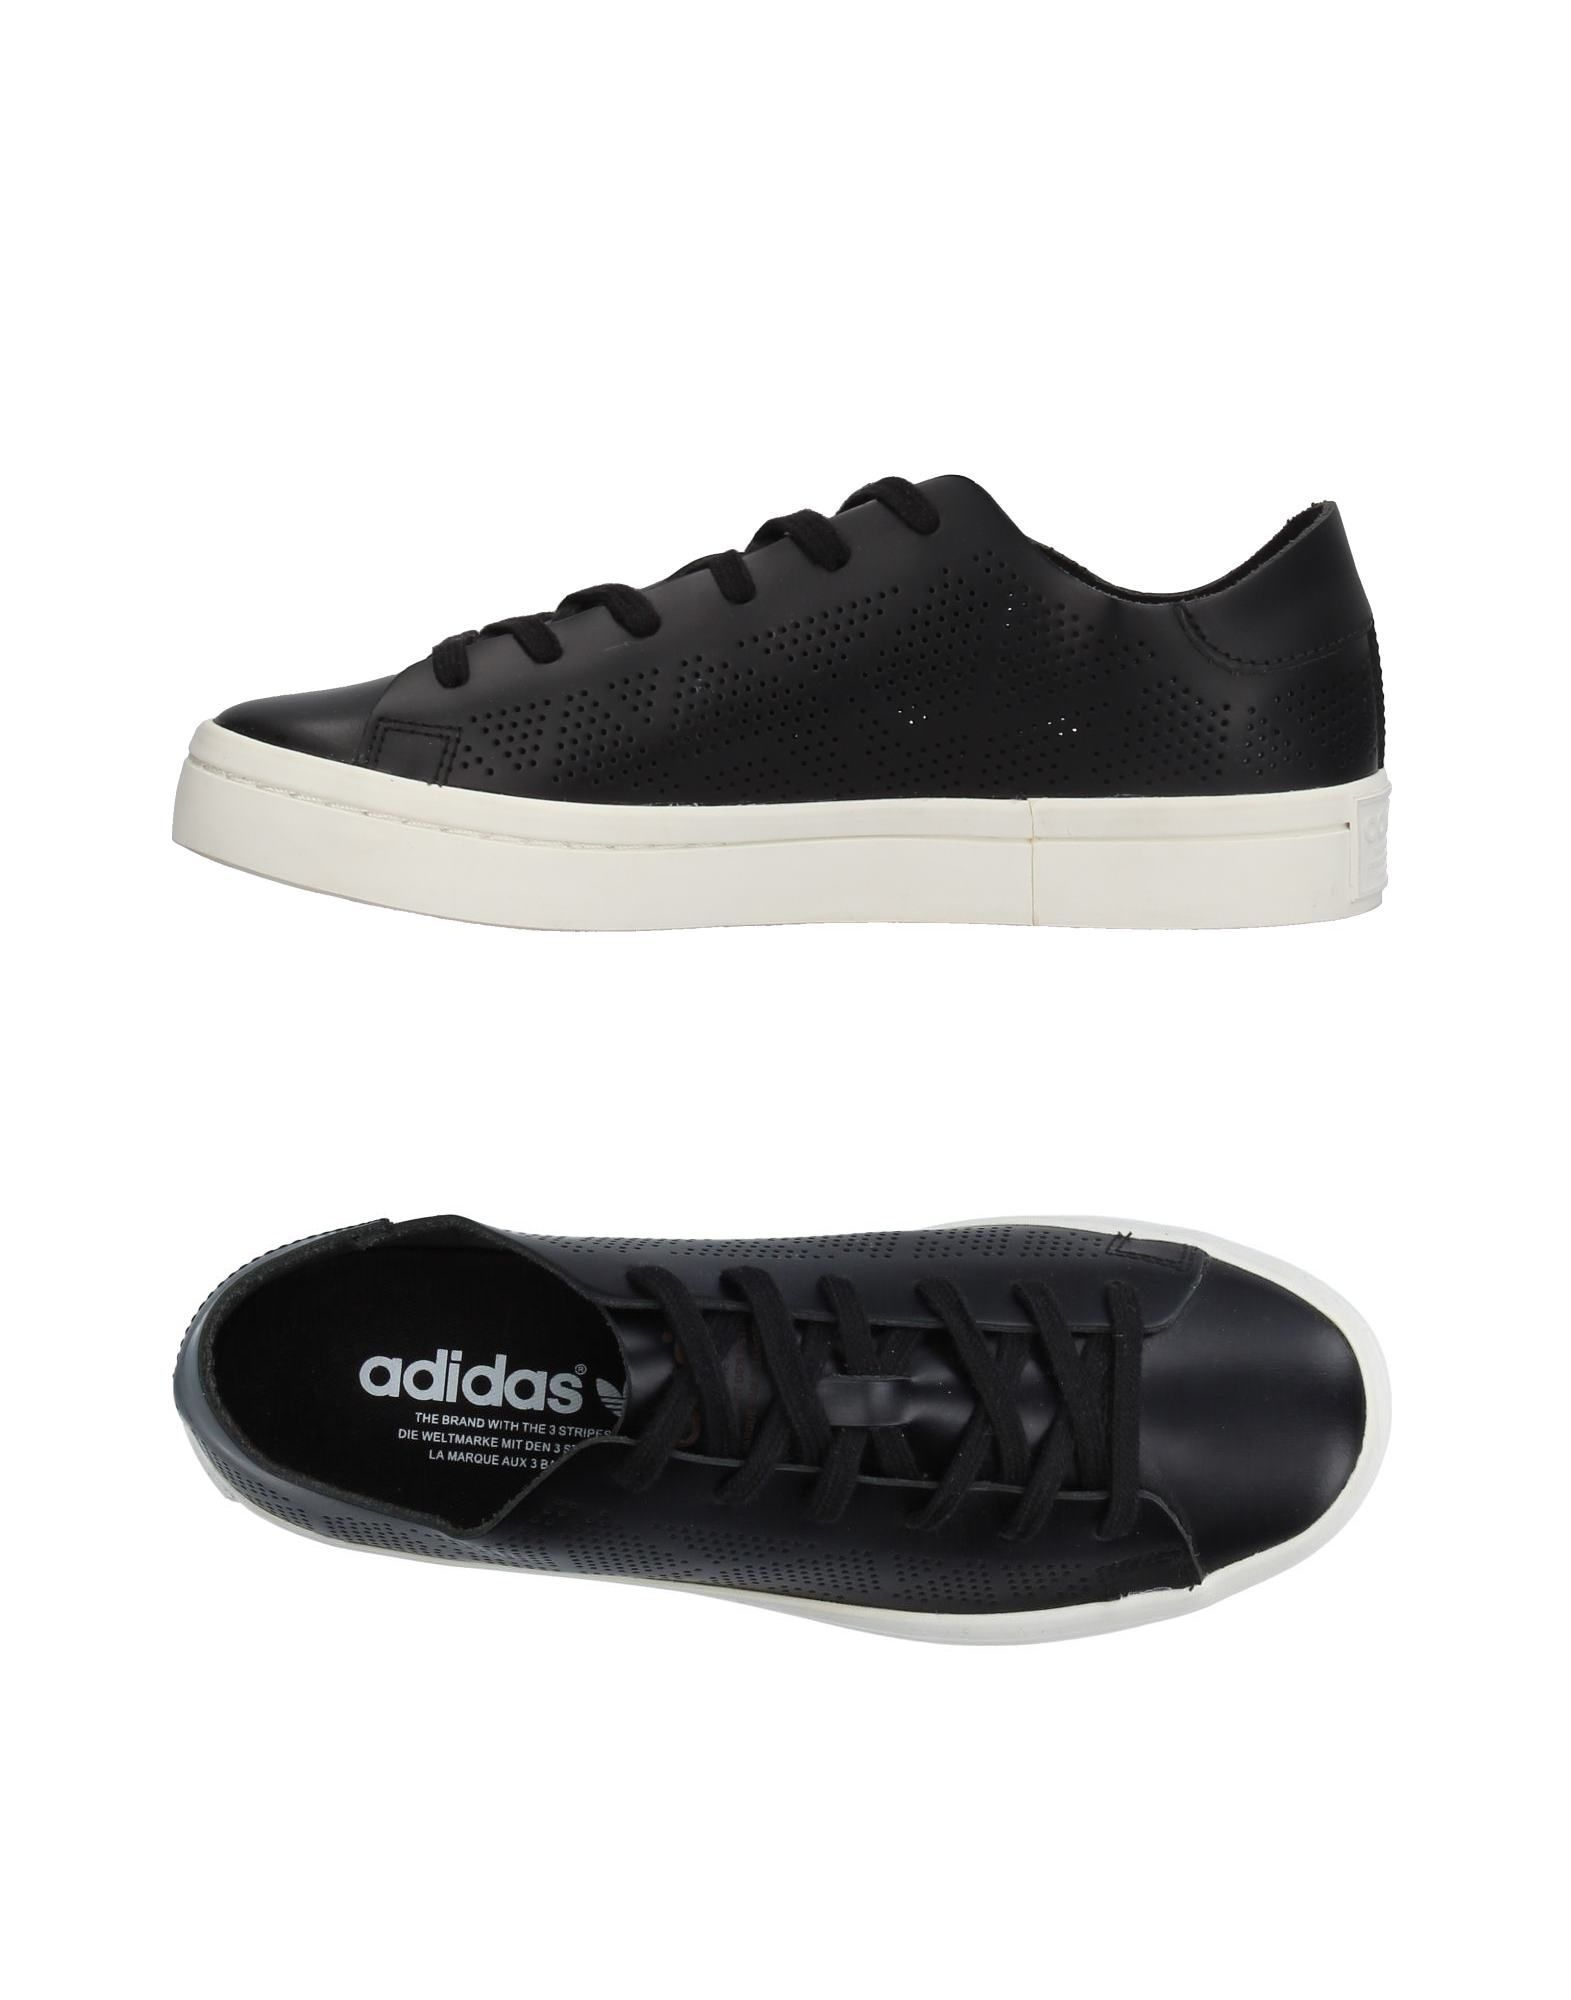 Sneakers Adidas Originals Donna - 11216426IA